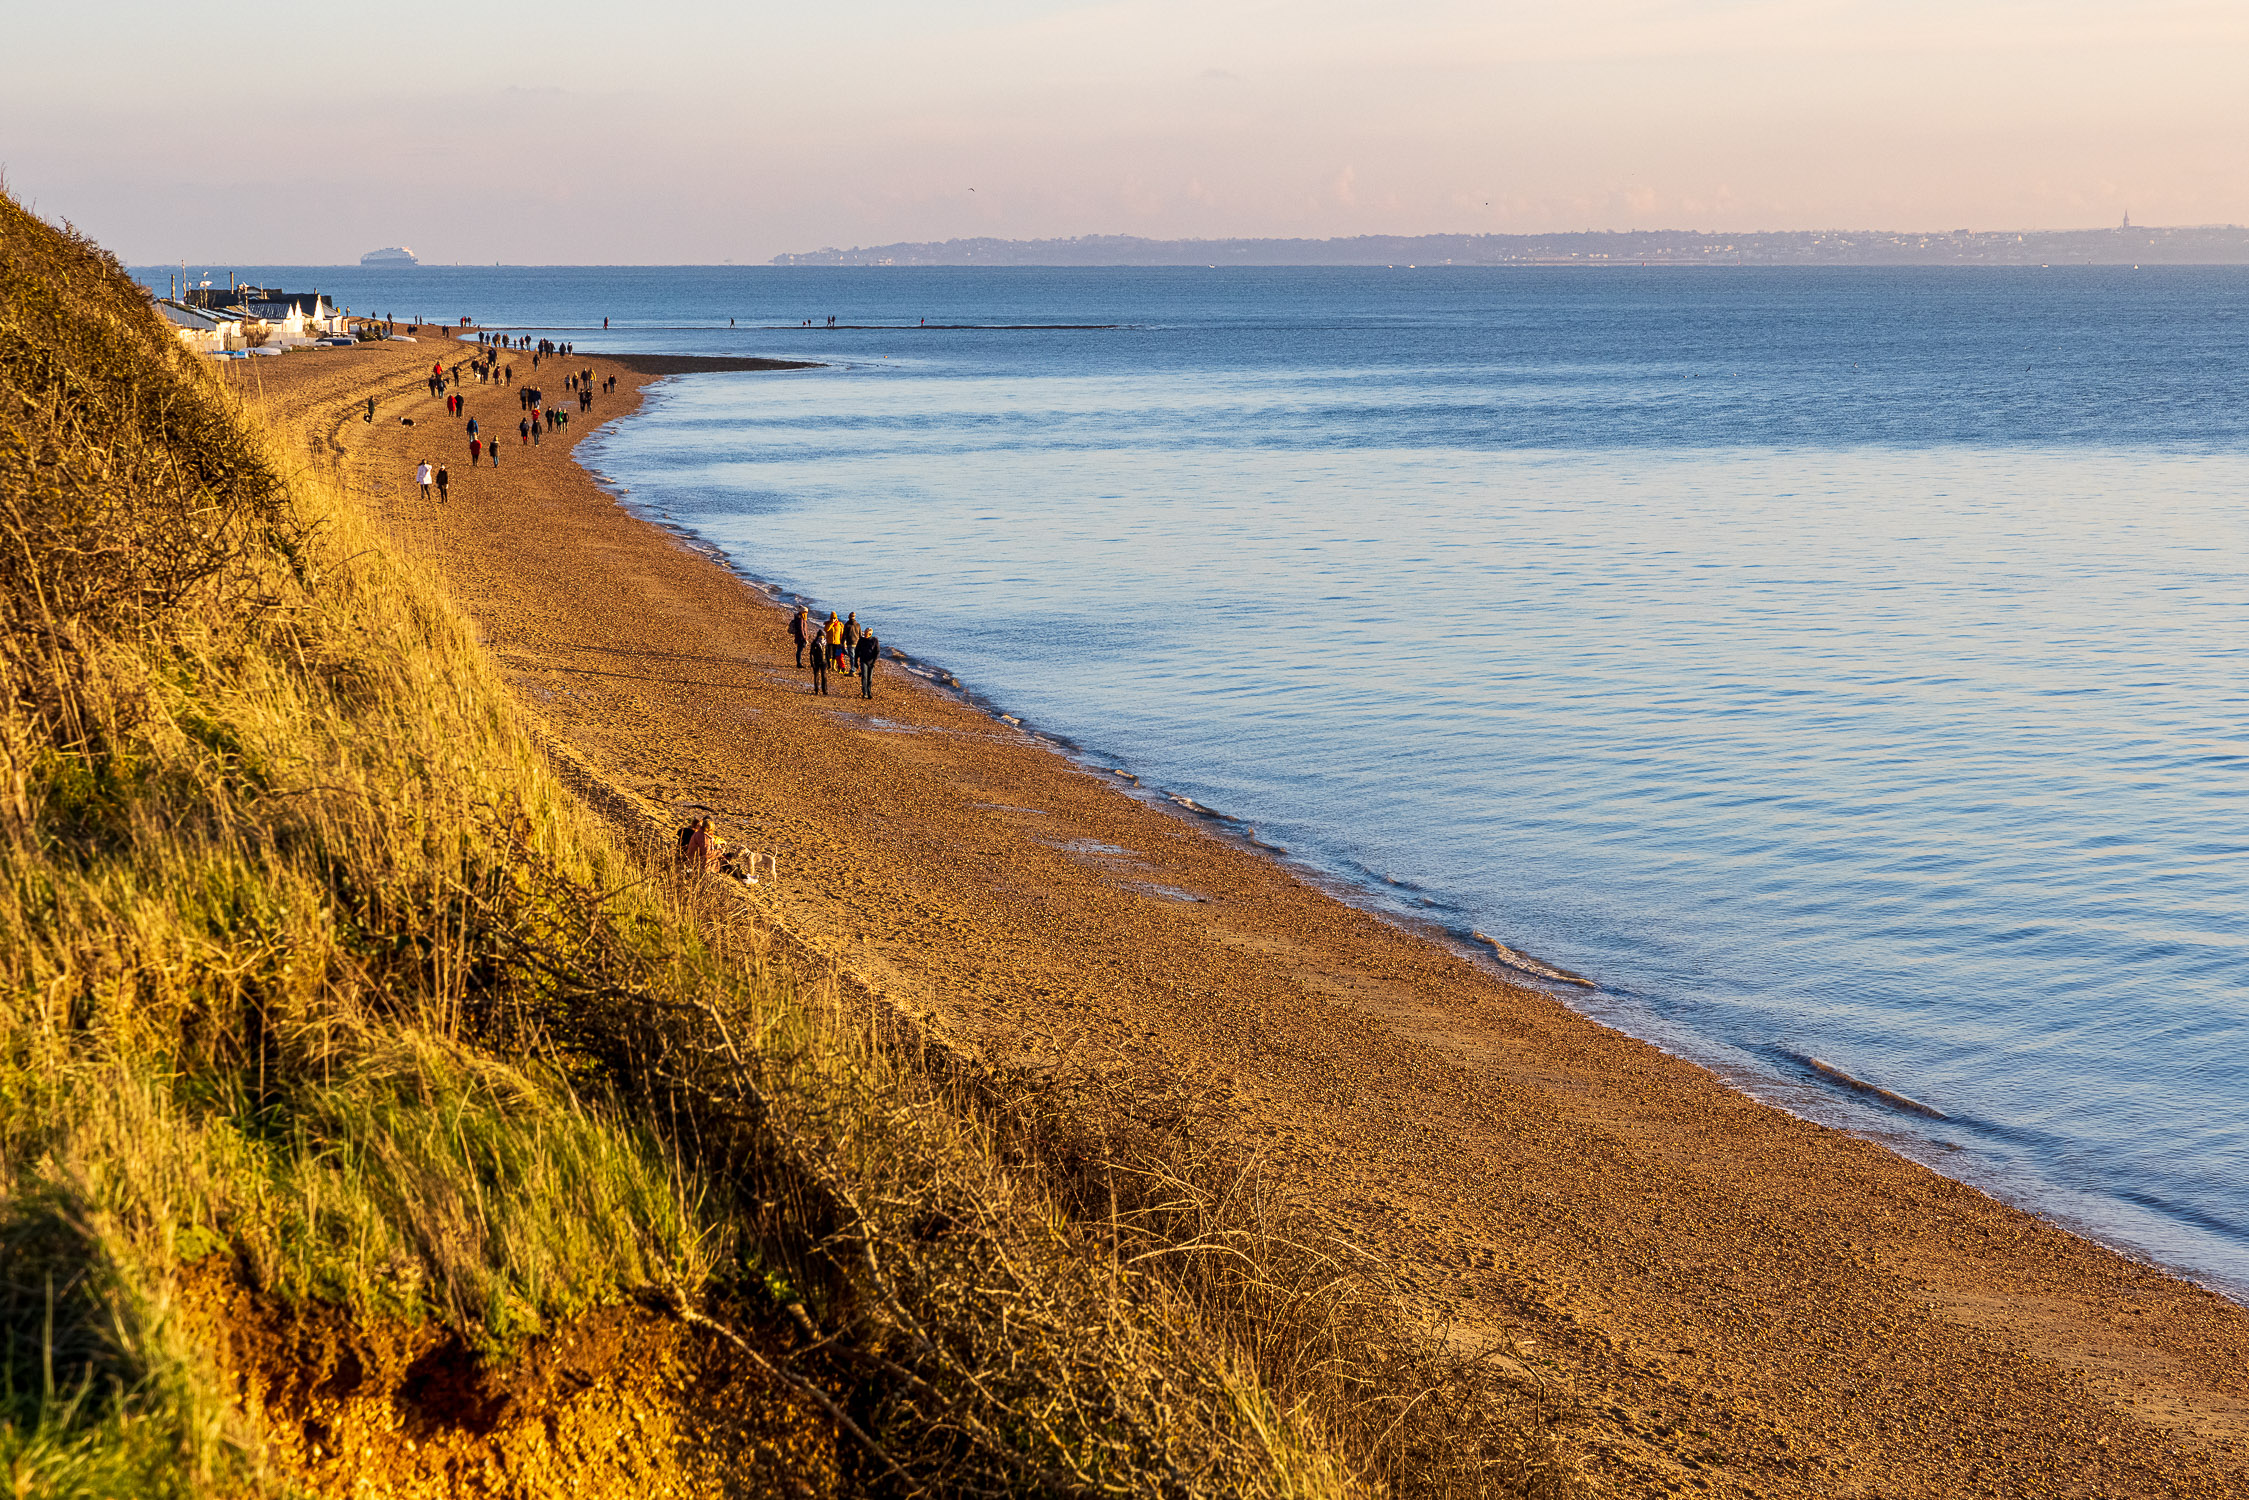 Meon Beach from the clifftop path